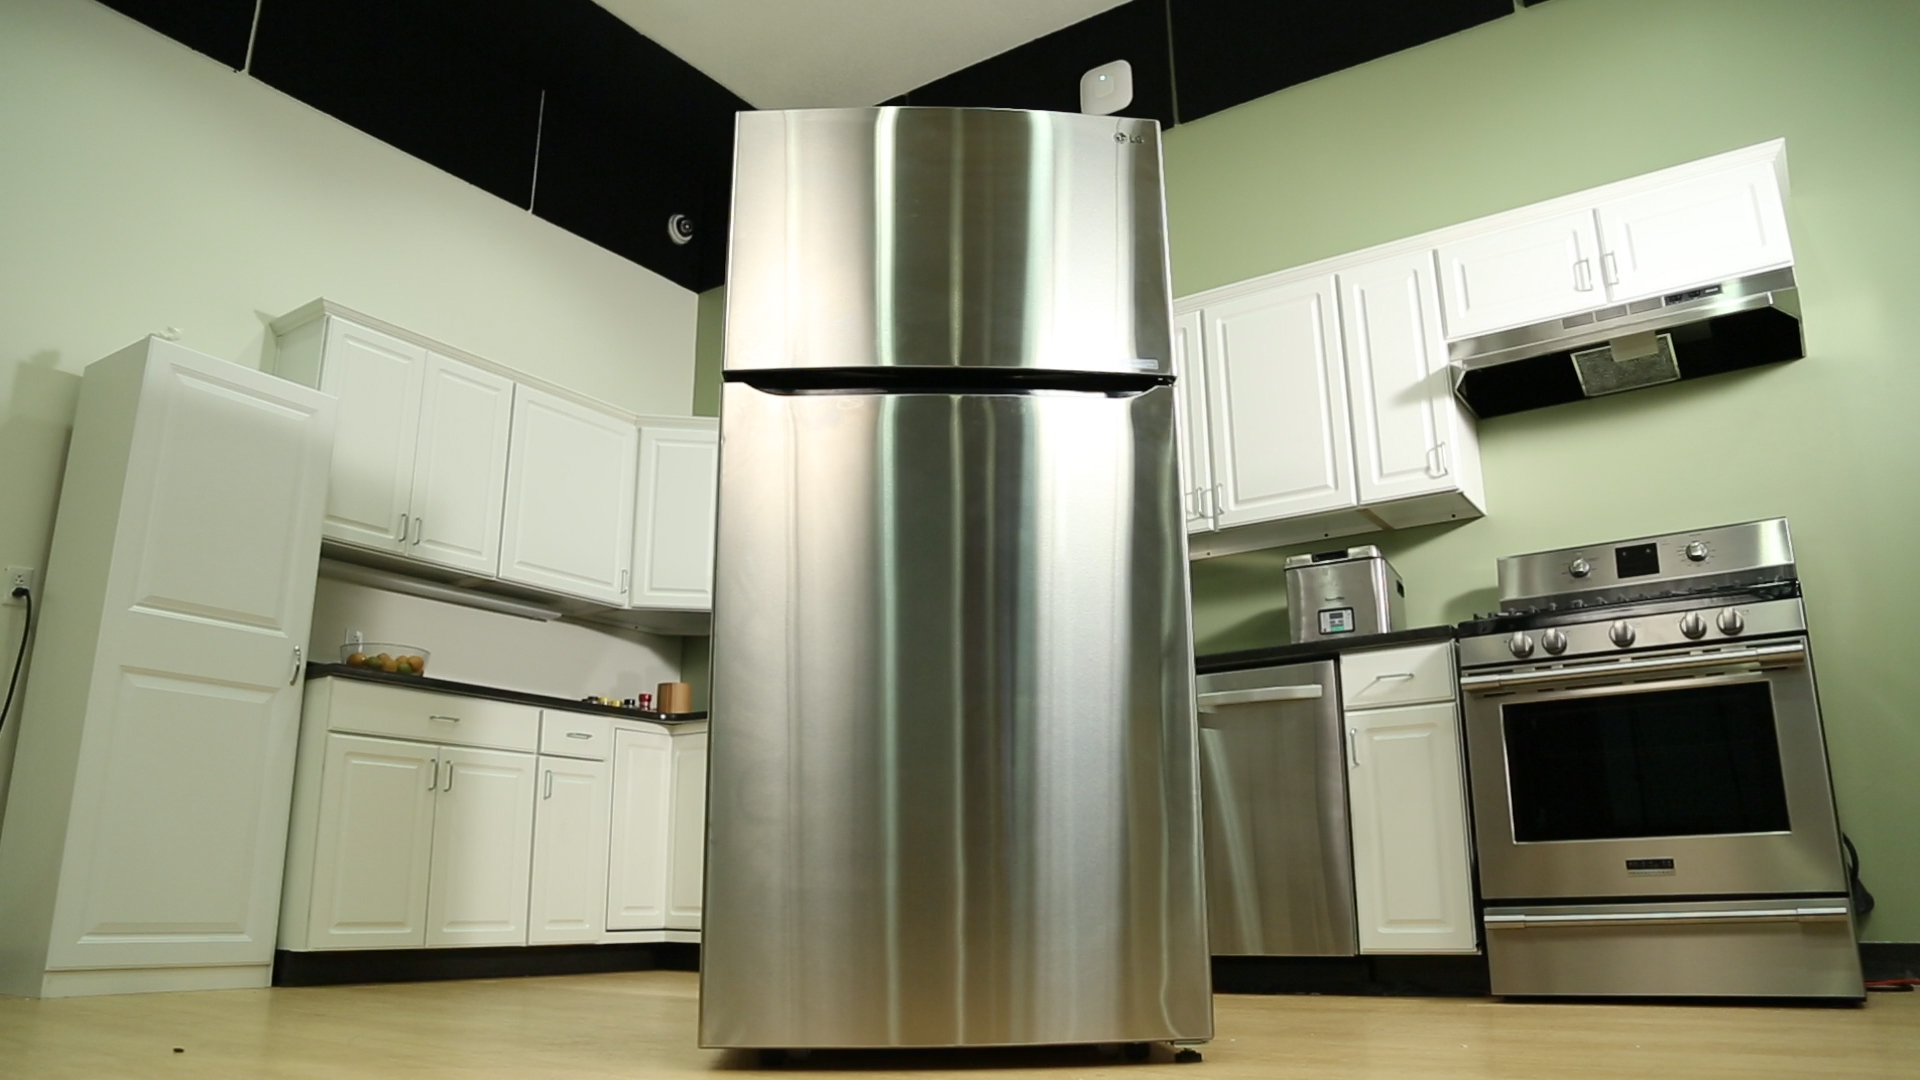 Video: This LG top freezer fridge is as big as they come